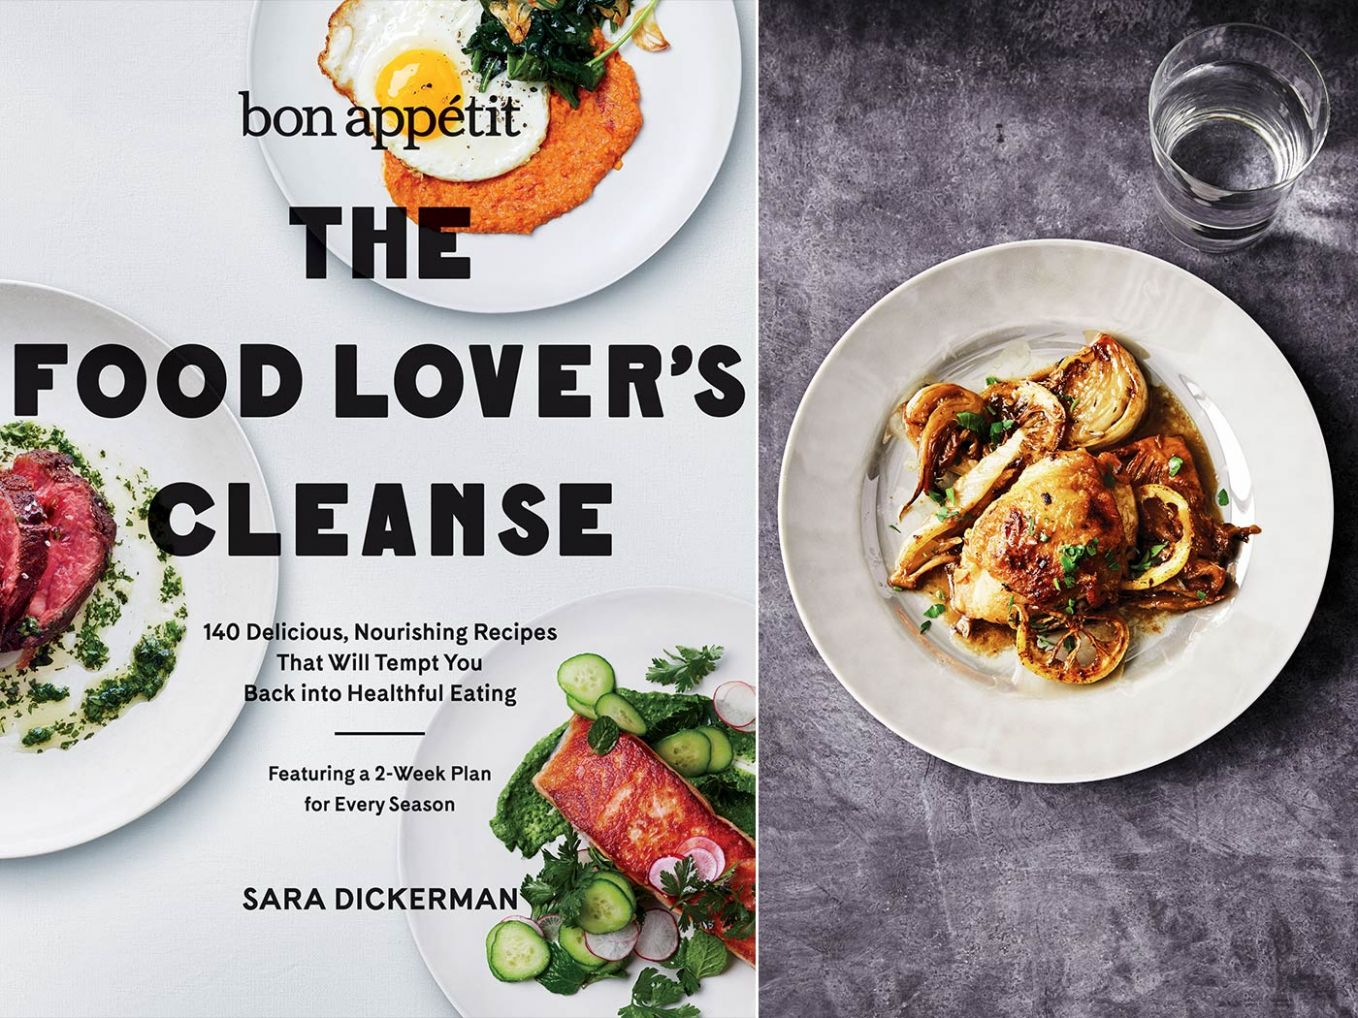 Hero-Bon-Appetit-Food-Lovers-Cleanse-Cookbook-Healthy-Recipes ..